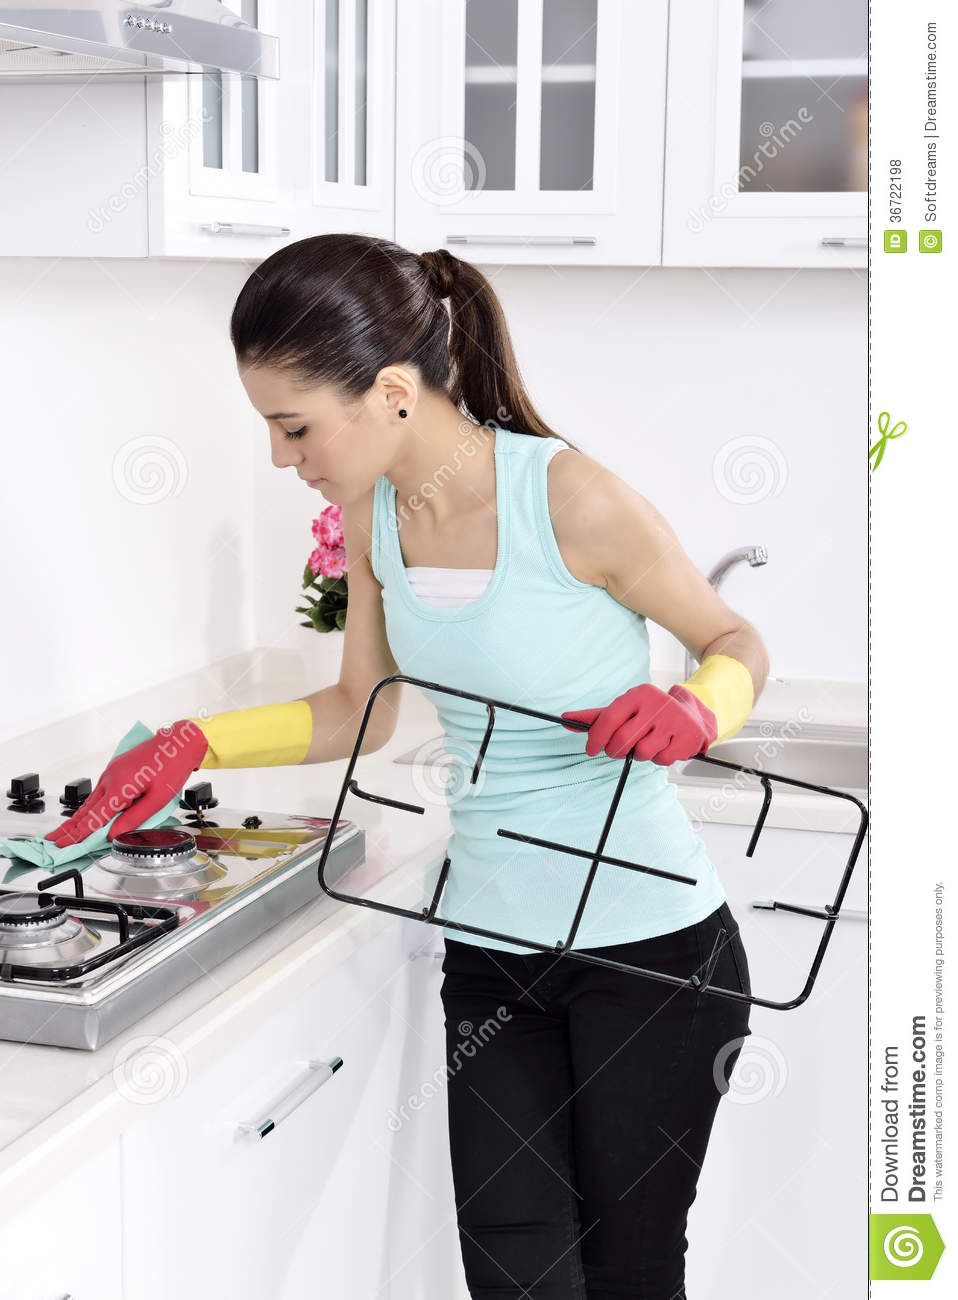 Cleaning the house royalty free stock photos image 36722198 for House cleaning stock photos